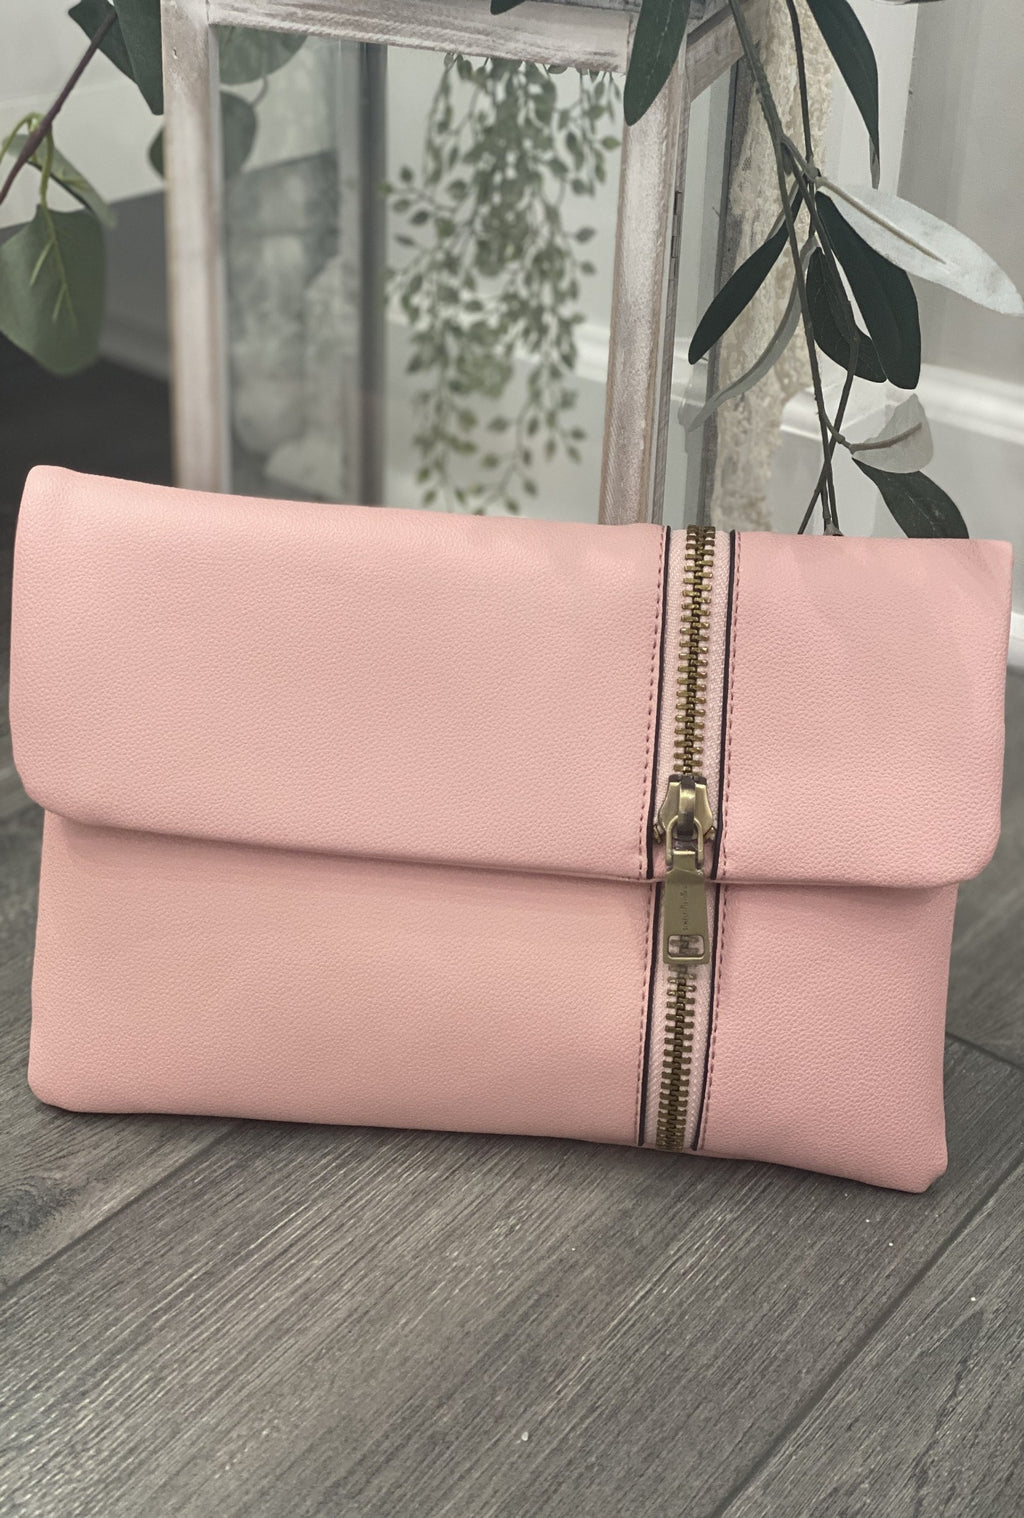 Blush Zip It Clutch - Bellamie Boutique